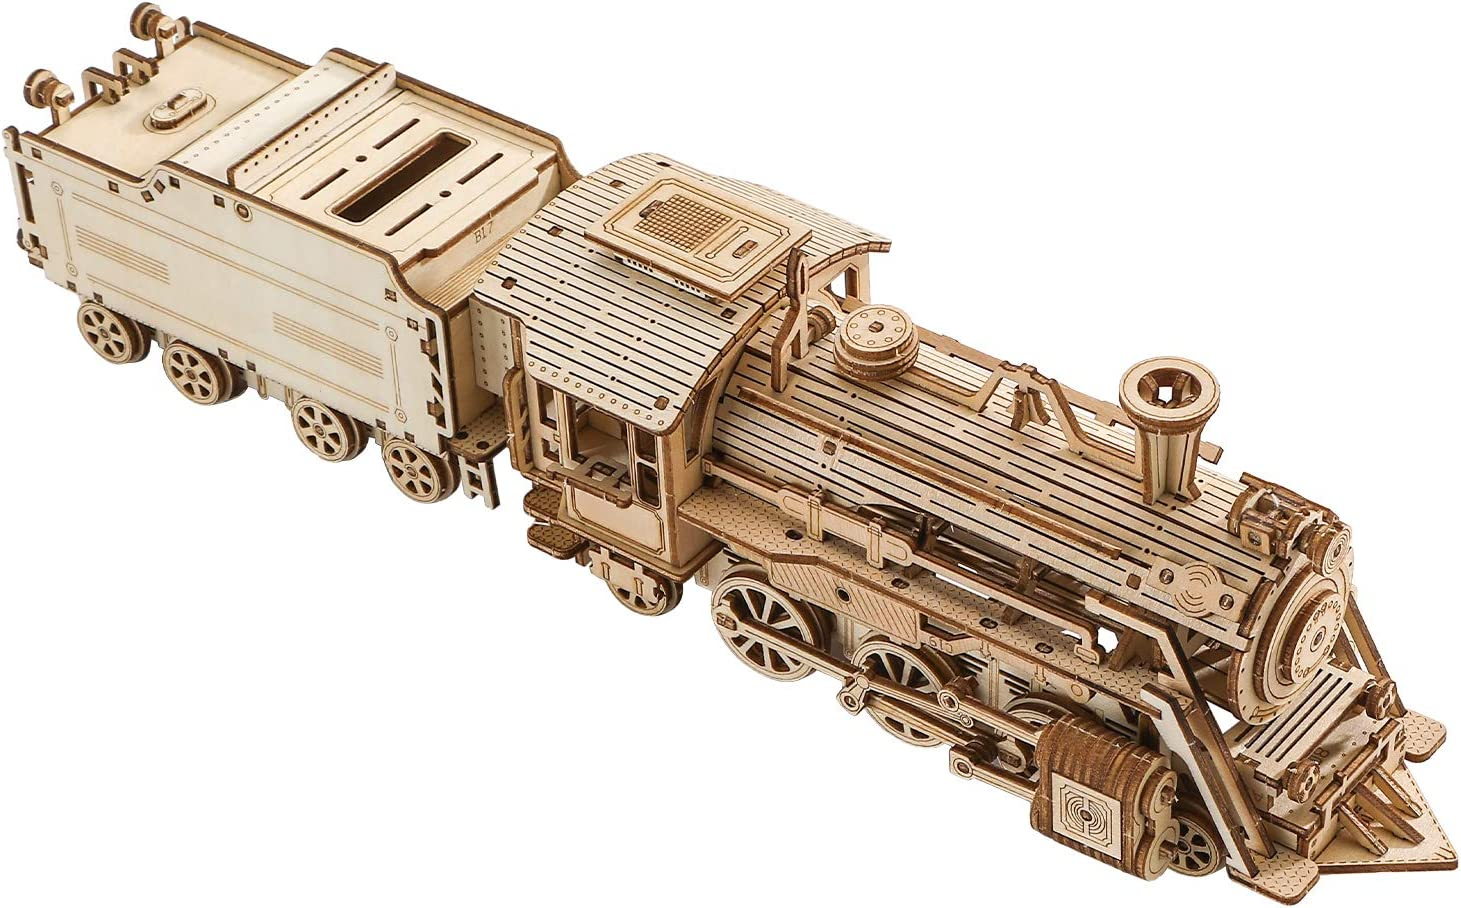 3D Wooden Puzzle Great interest Luxury Steam Puzzles Train Adults for - Max 82% OFF